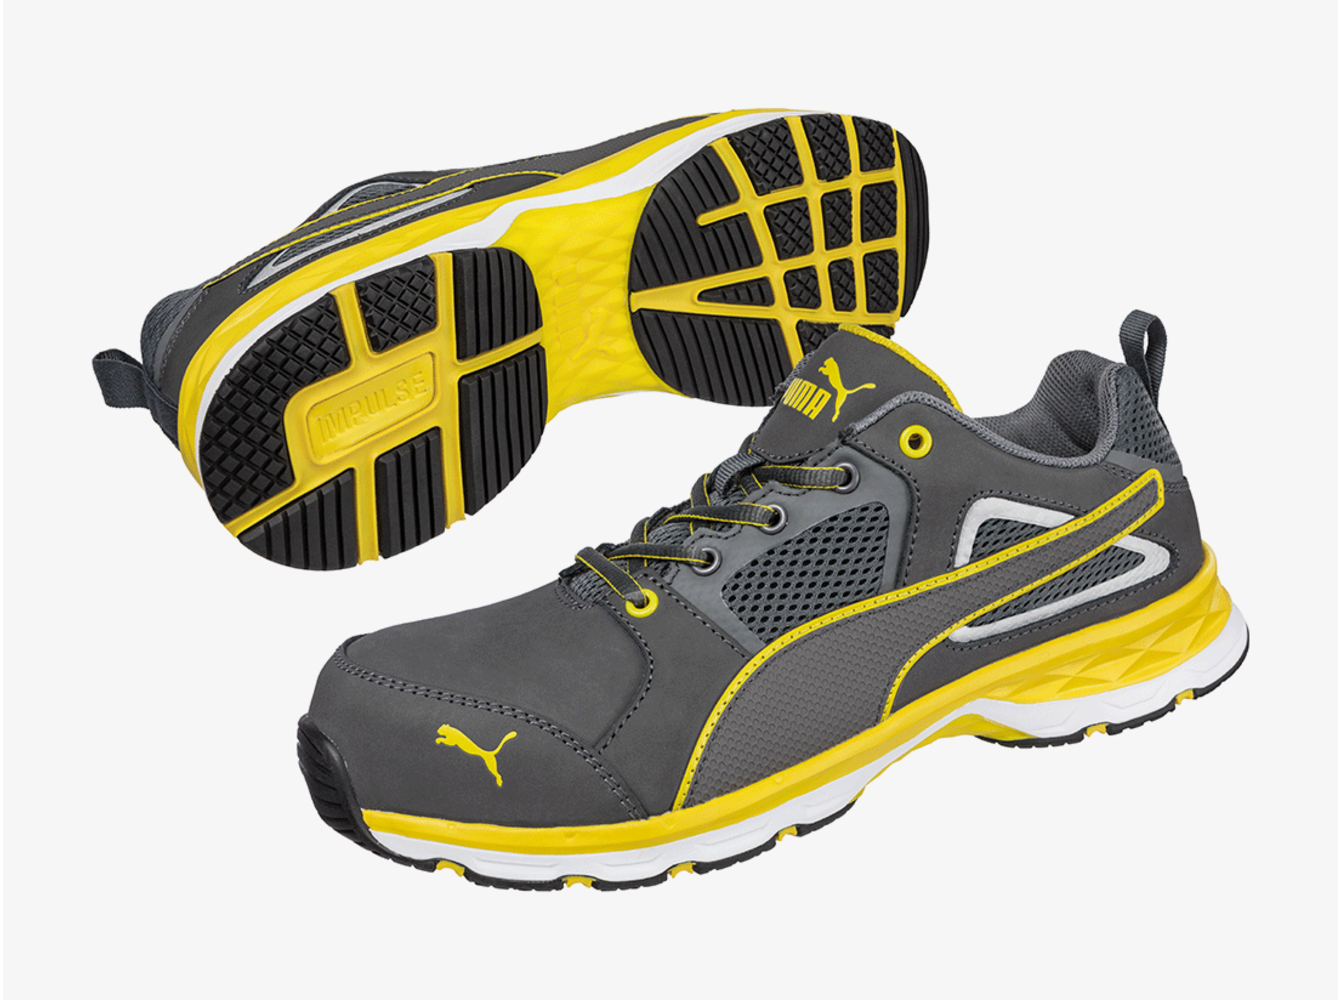 Puma 64.380.0 Pace 2.0 Yellow Low S1P